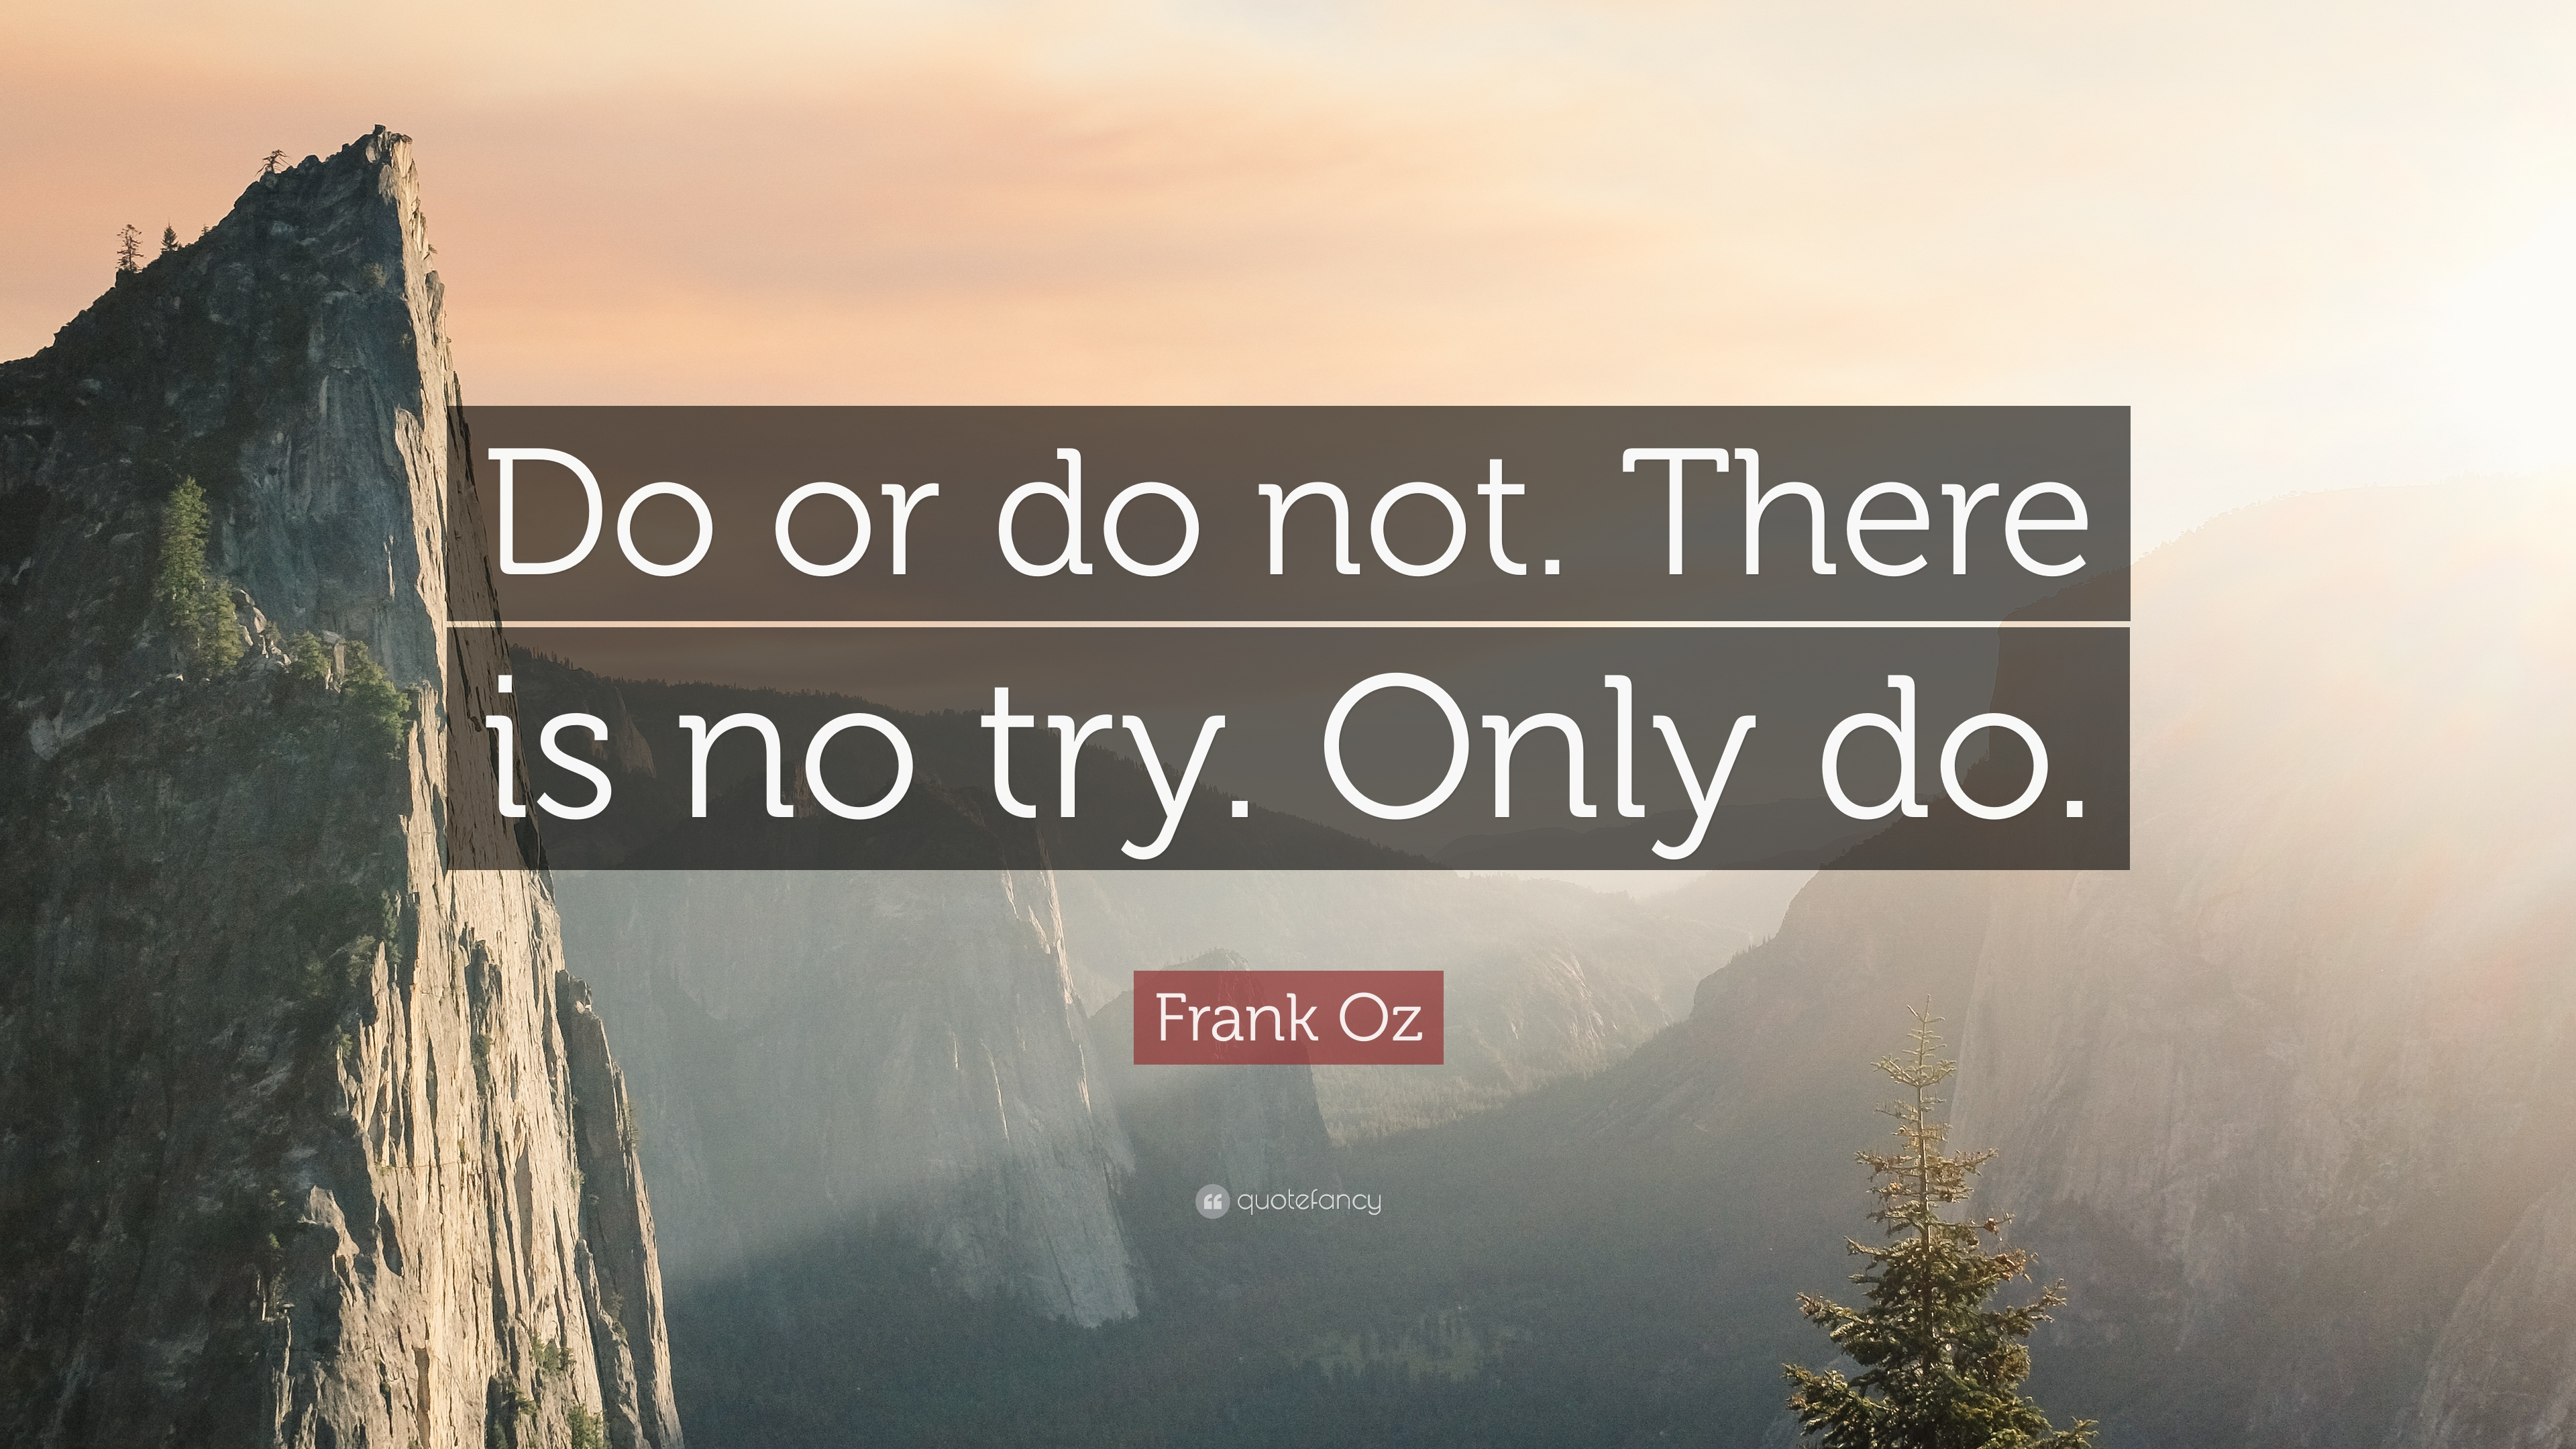 Quotes About Trying (40 wallpapers) - Quotefancy